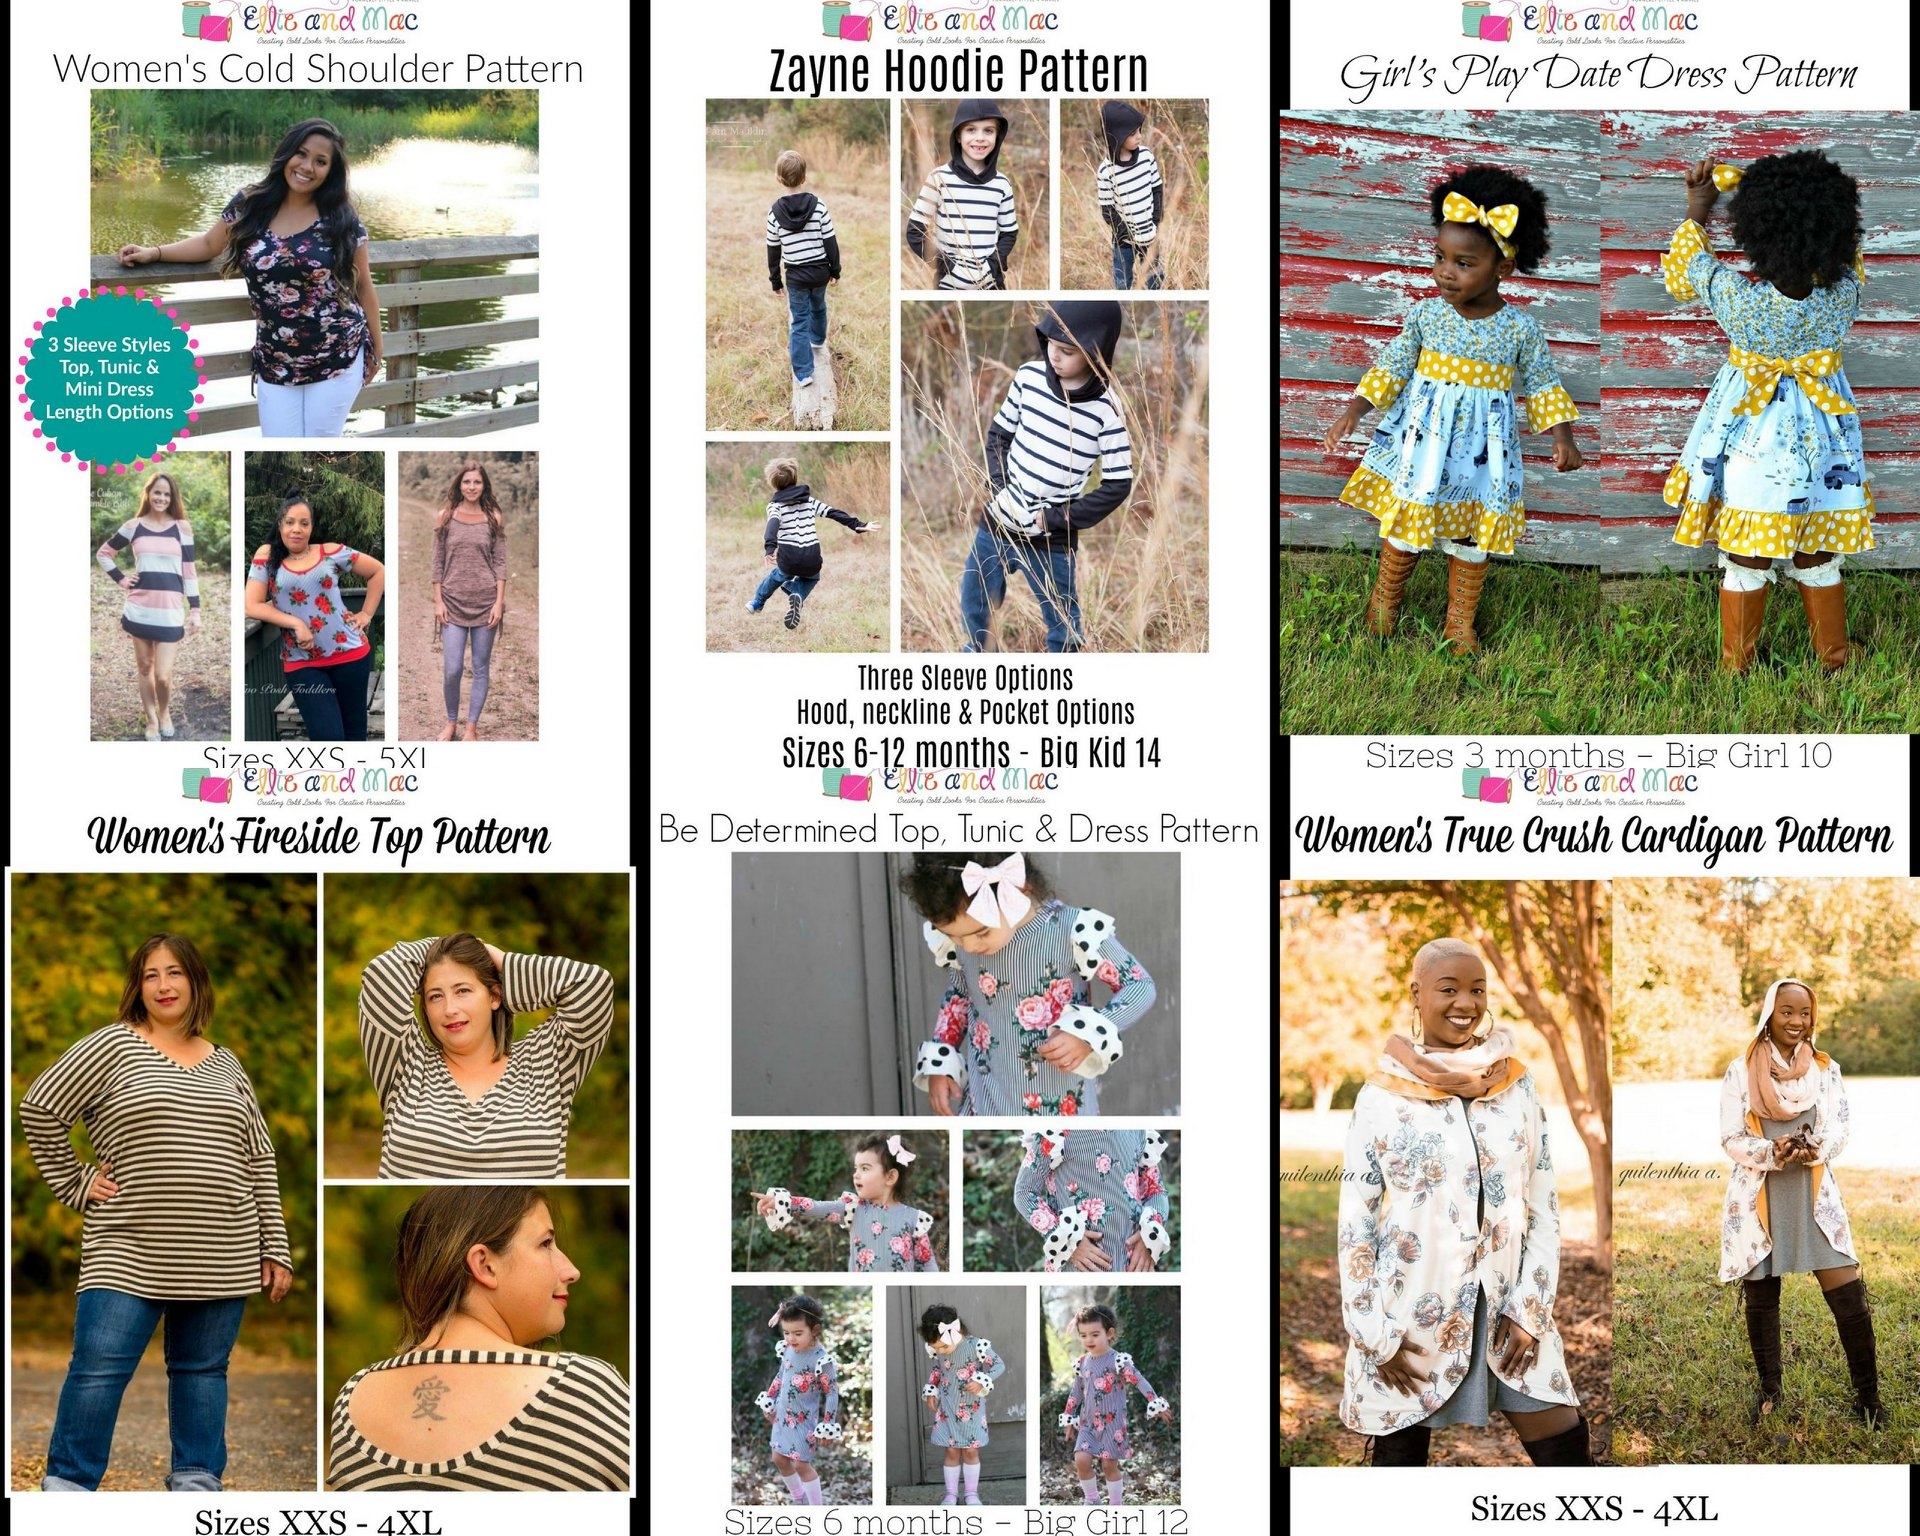 Wacky Wednesday $1 Sewing Patterns at Ellie and Mac October 3